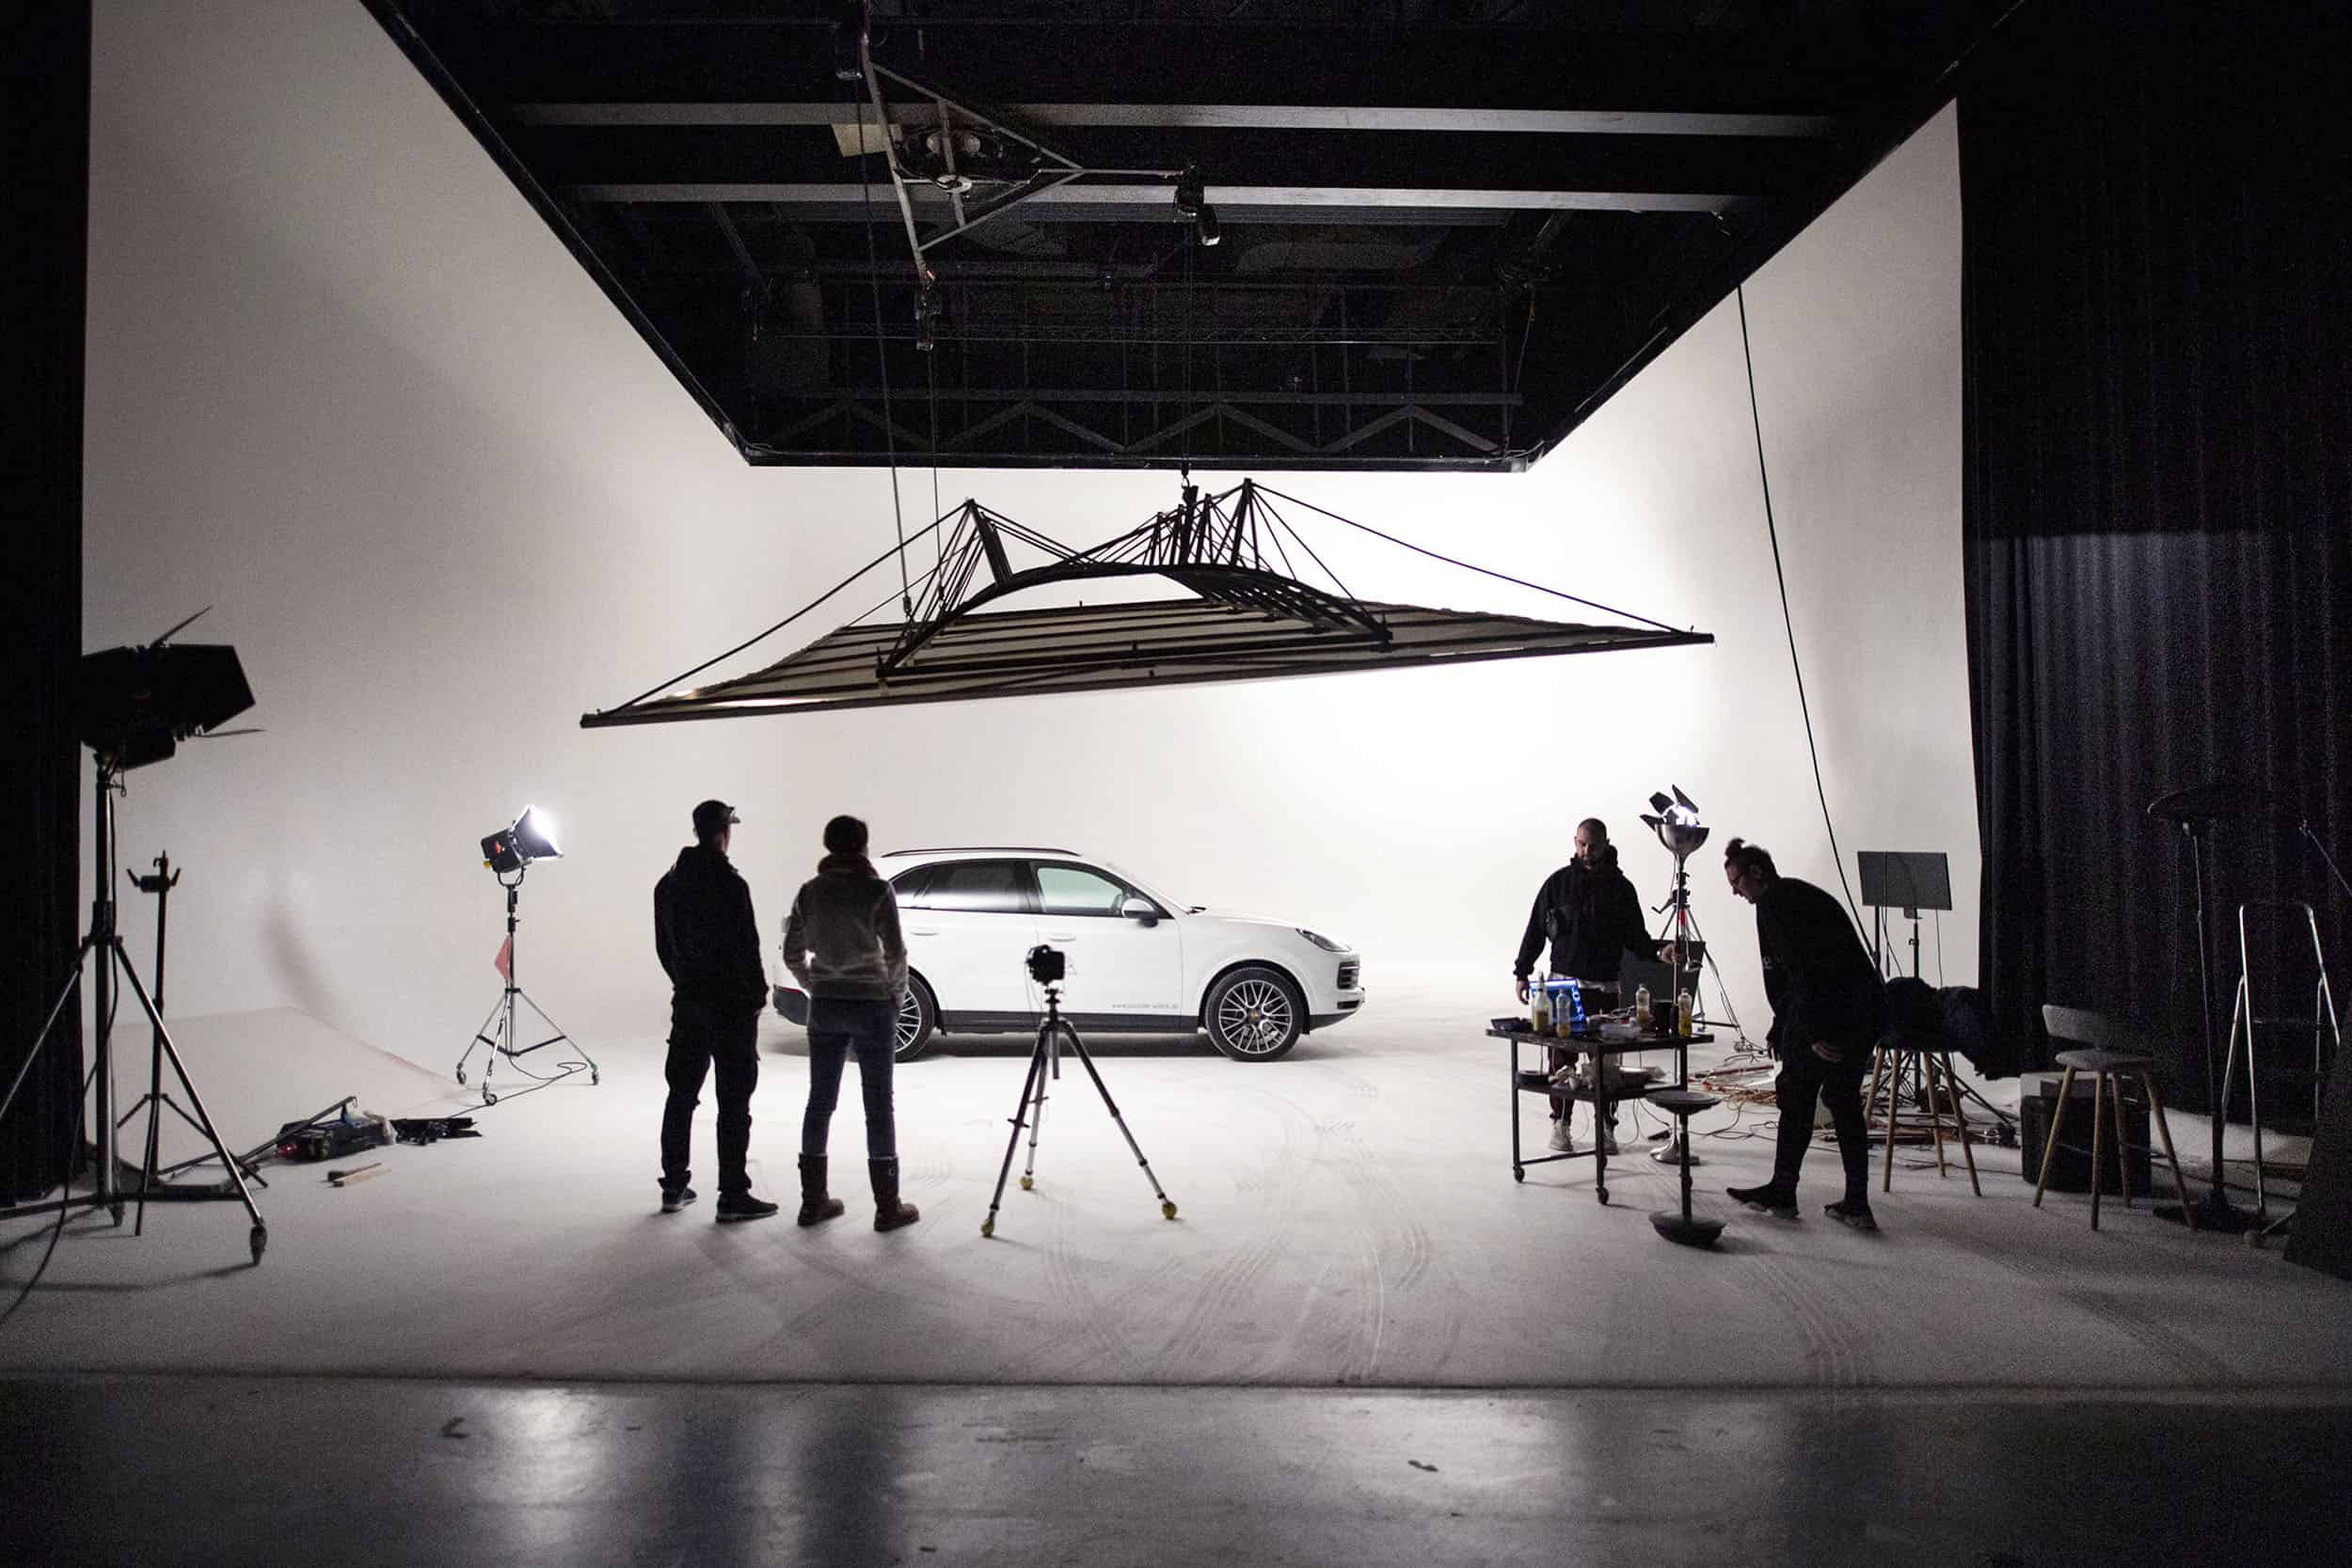 studio-ignatov-wkw-automotive-imagekampagne-makingof-07